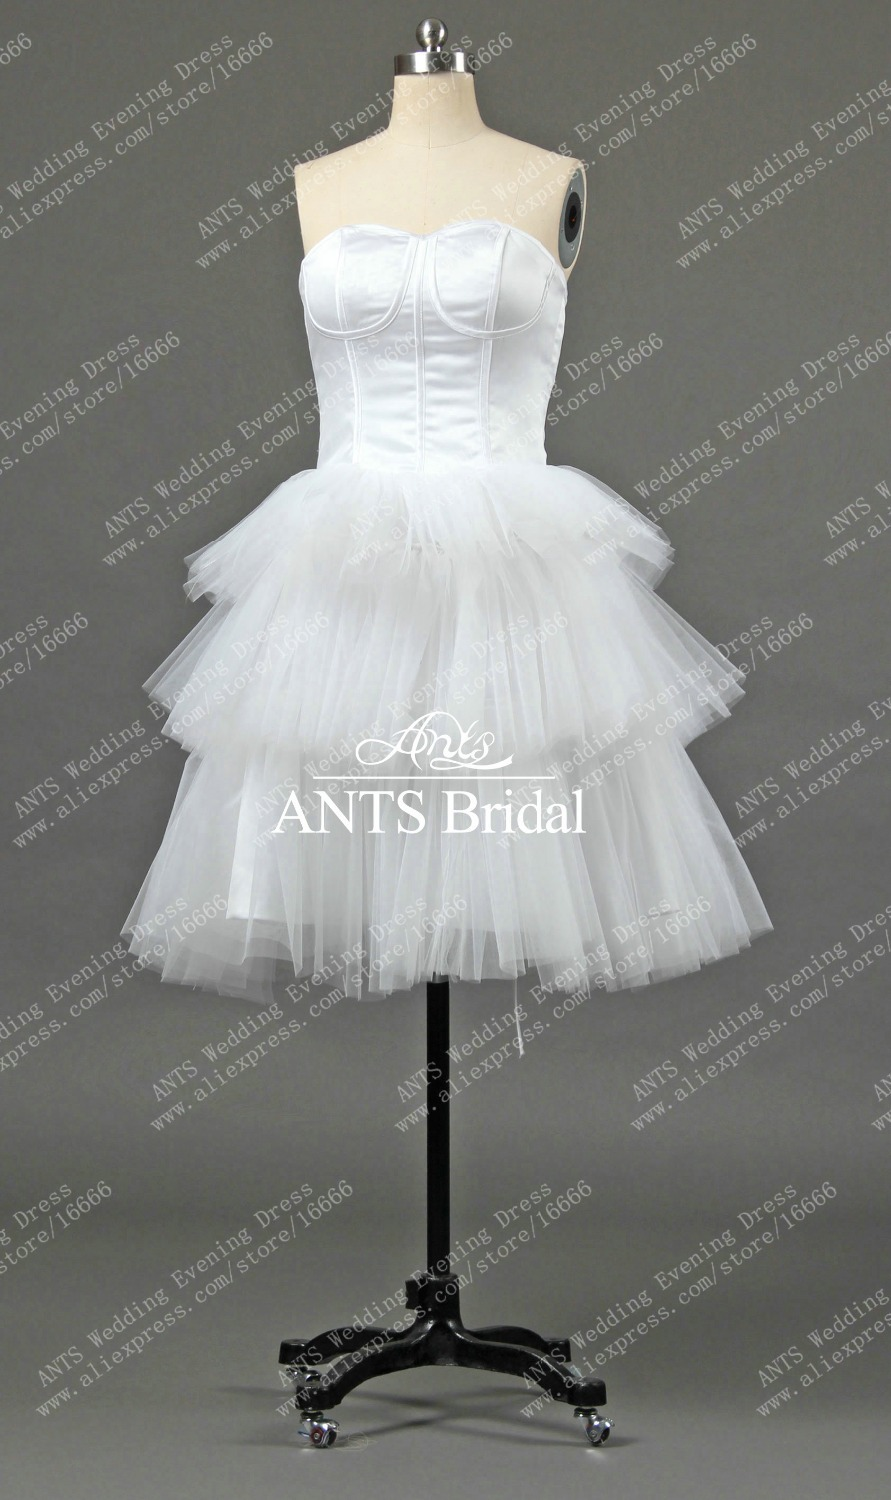 Wedding Dress Short Corset : Rw real new satin tulle white corset short bridal dress